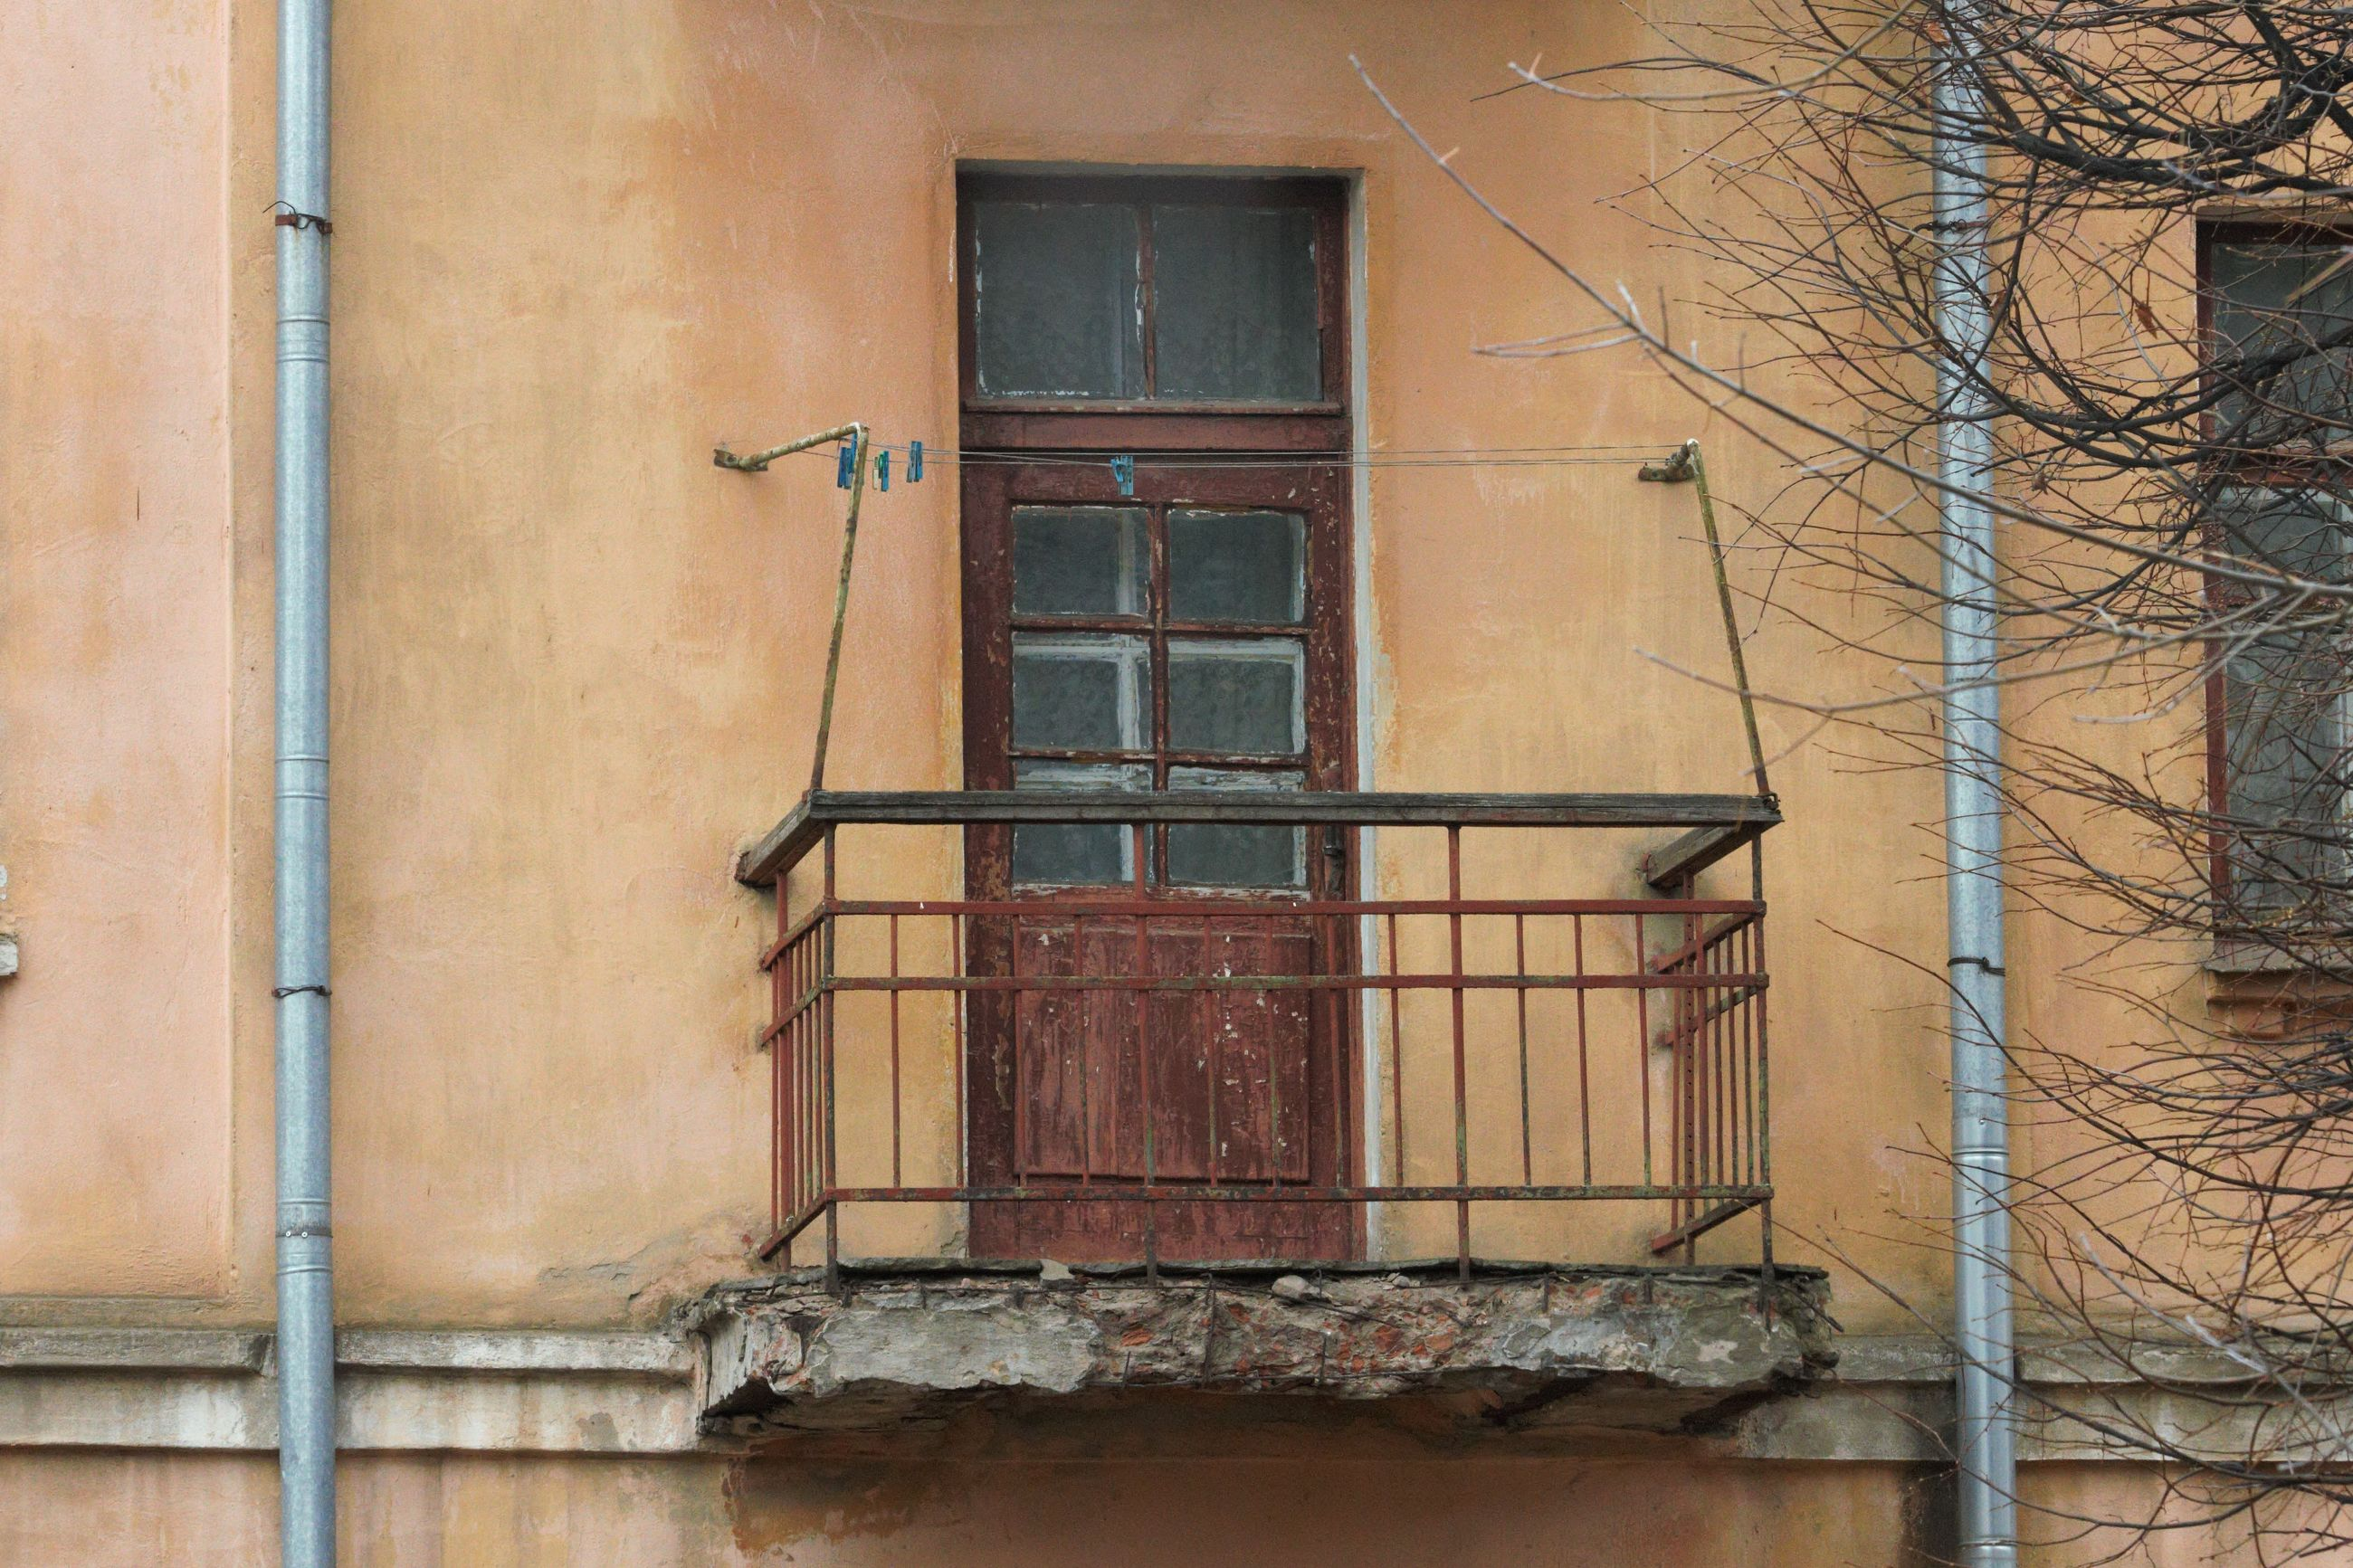 built structure, architecture, window, building exterior, building, no people, day, residential district, house, door, entrance, closed, wall - building feature, outdoors, old, glass - material, wall, low angle view, safety, bare tree